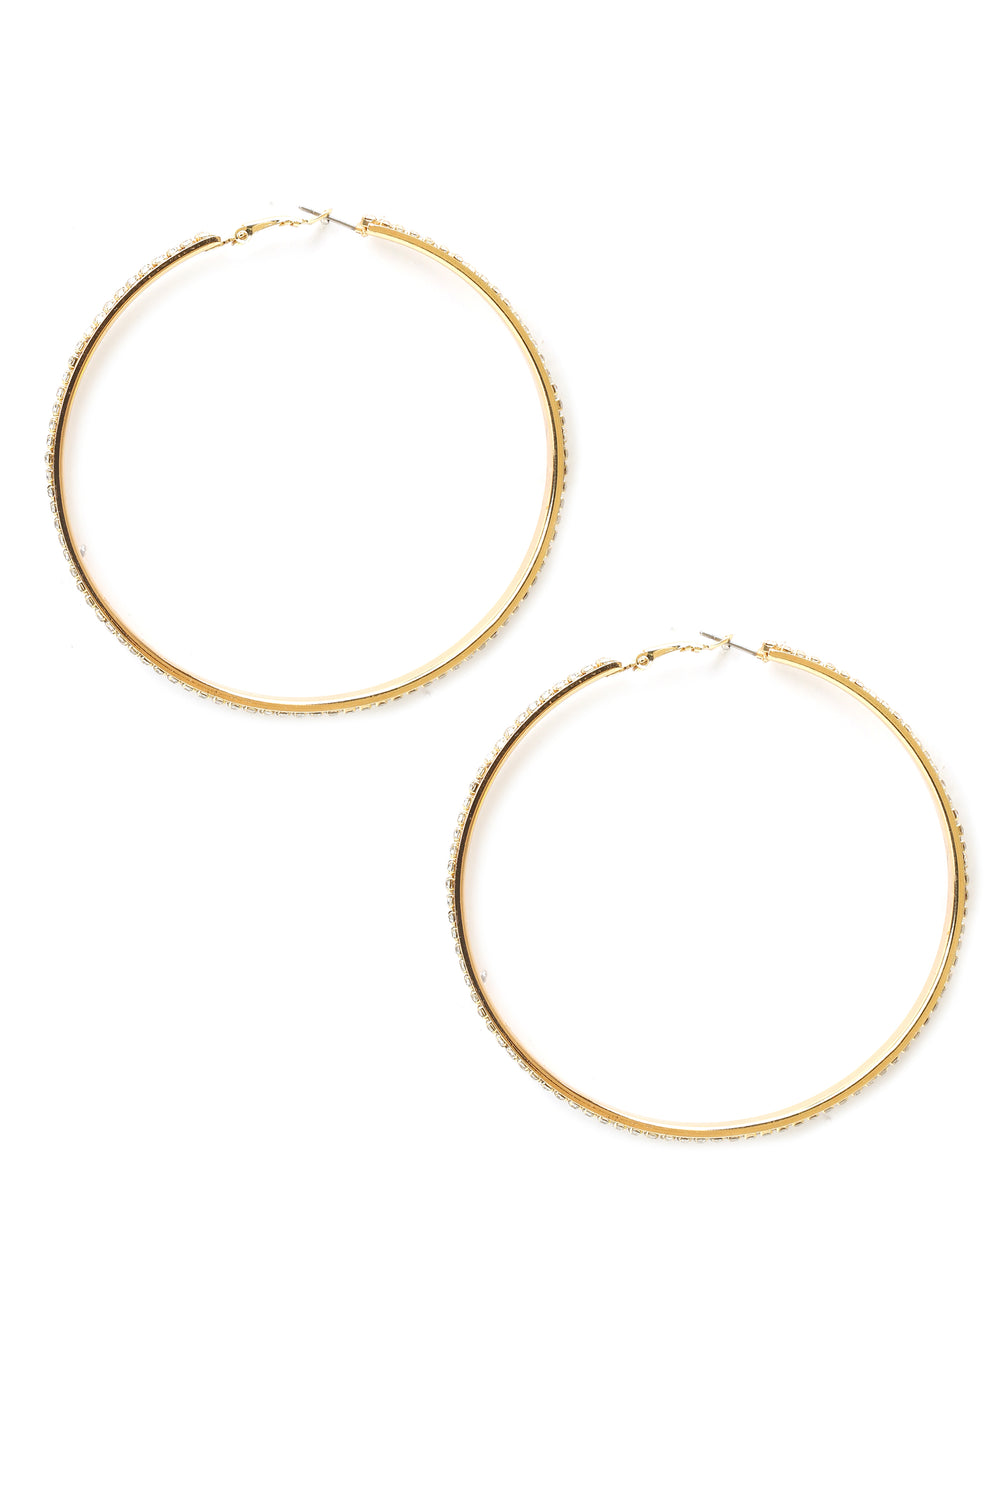 The Time To Shine Earrings - Gold